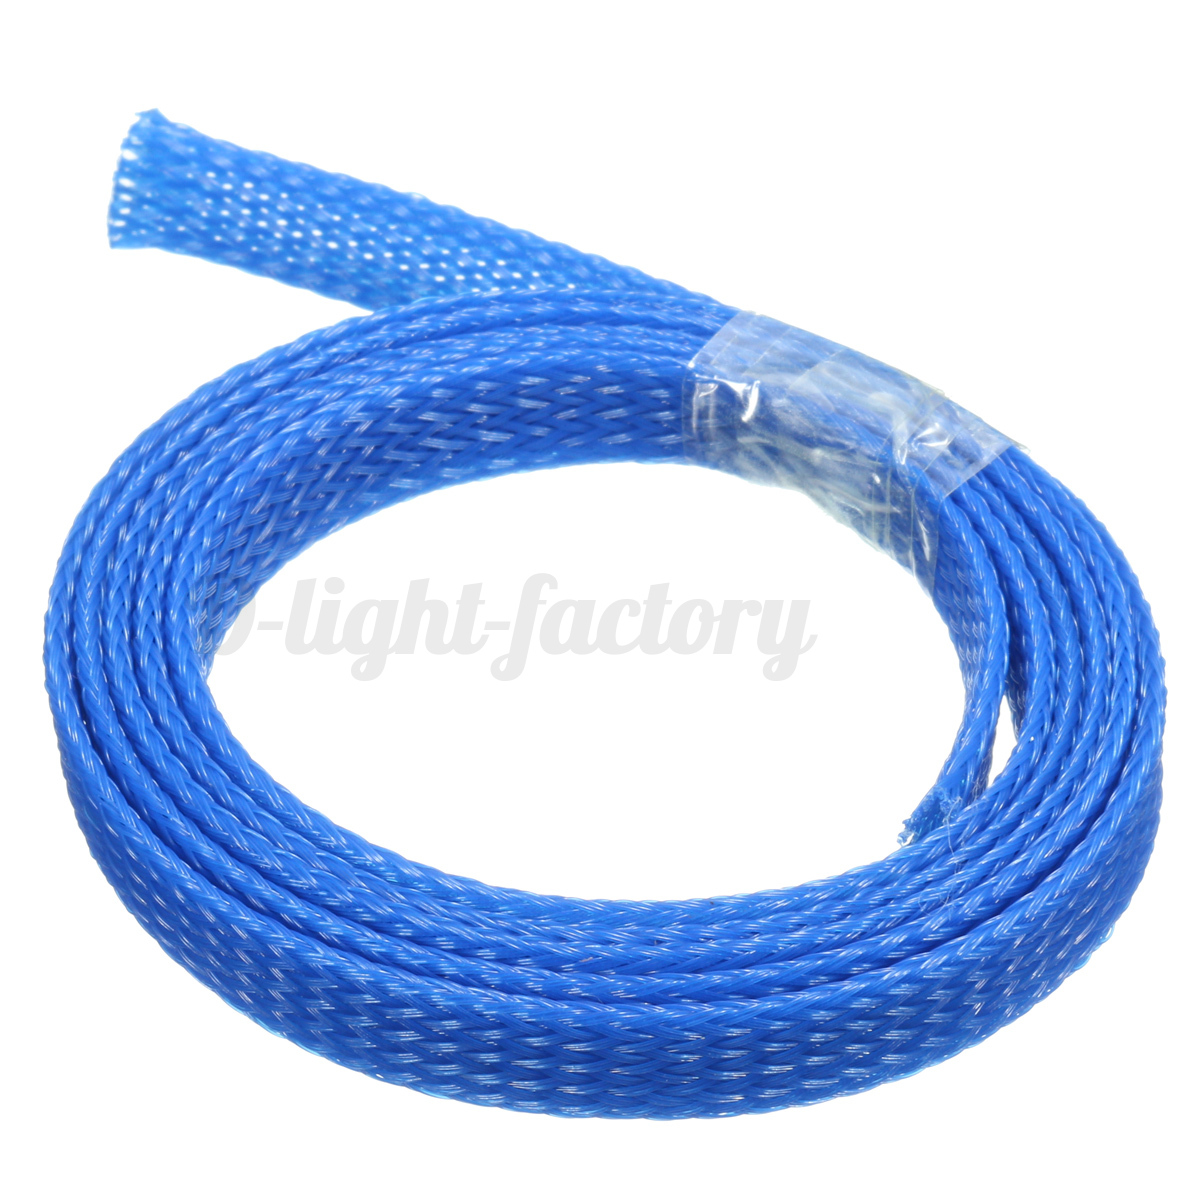 1pcs 1m 8mm Braided Wire Tidy Mesh Expandable Sleeving Cable Harness